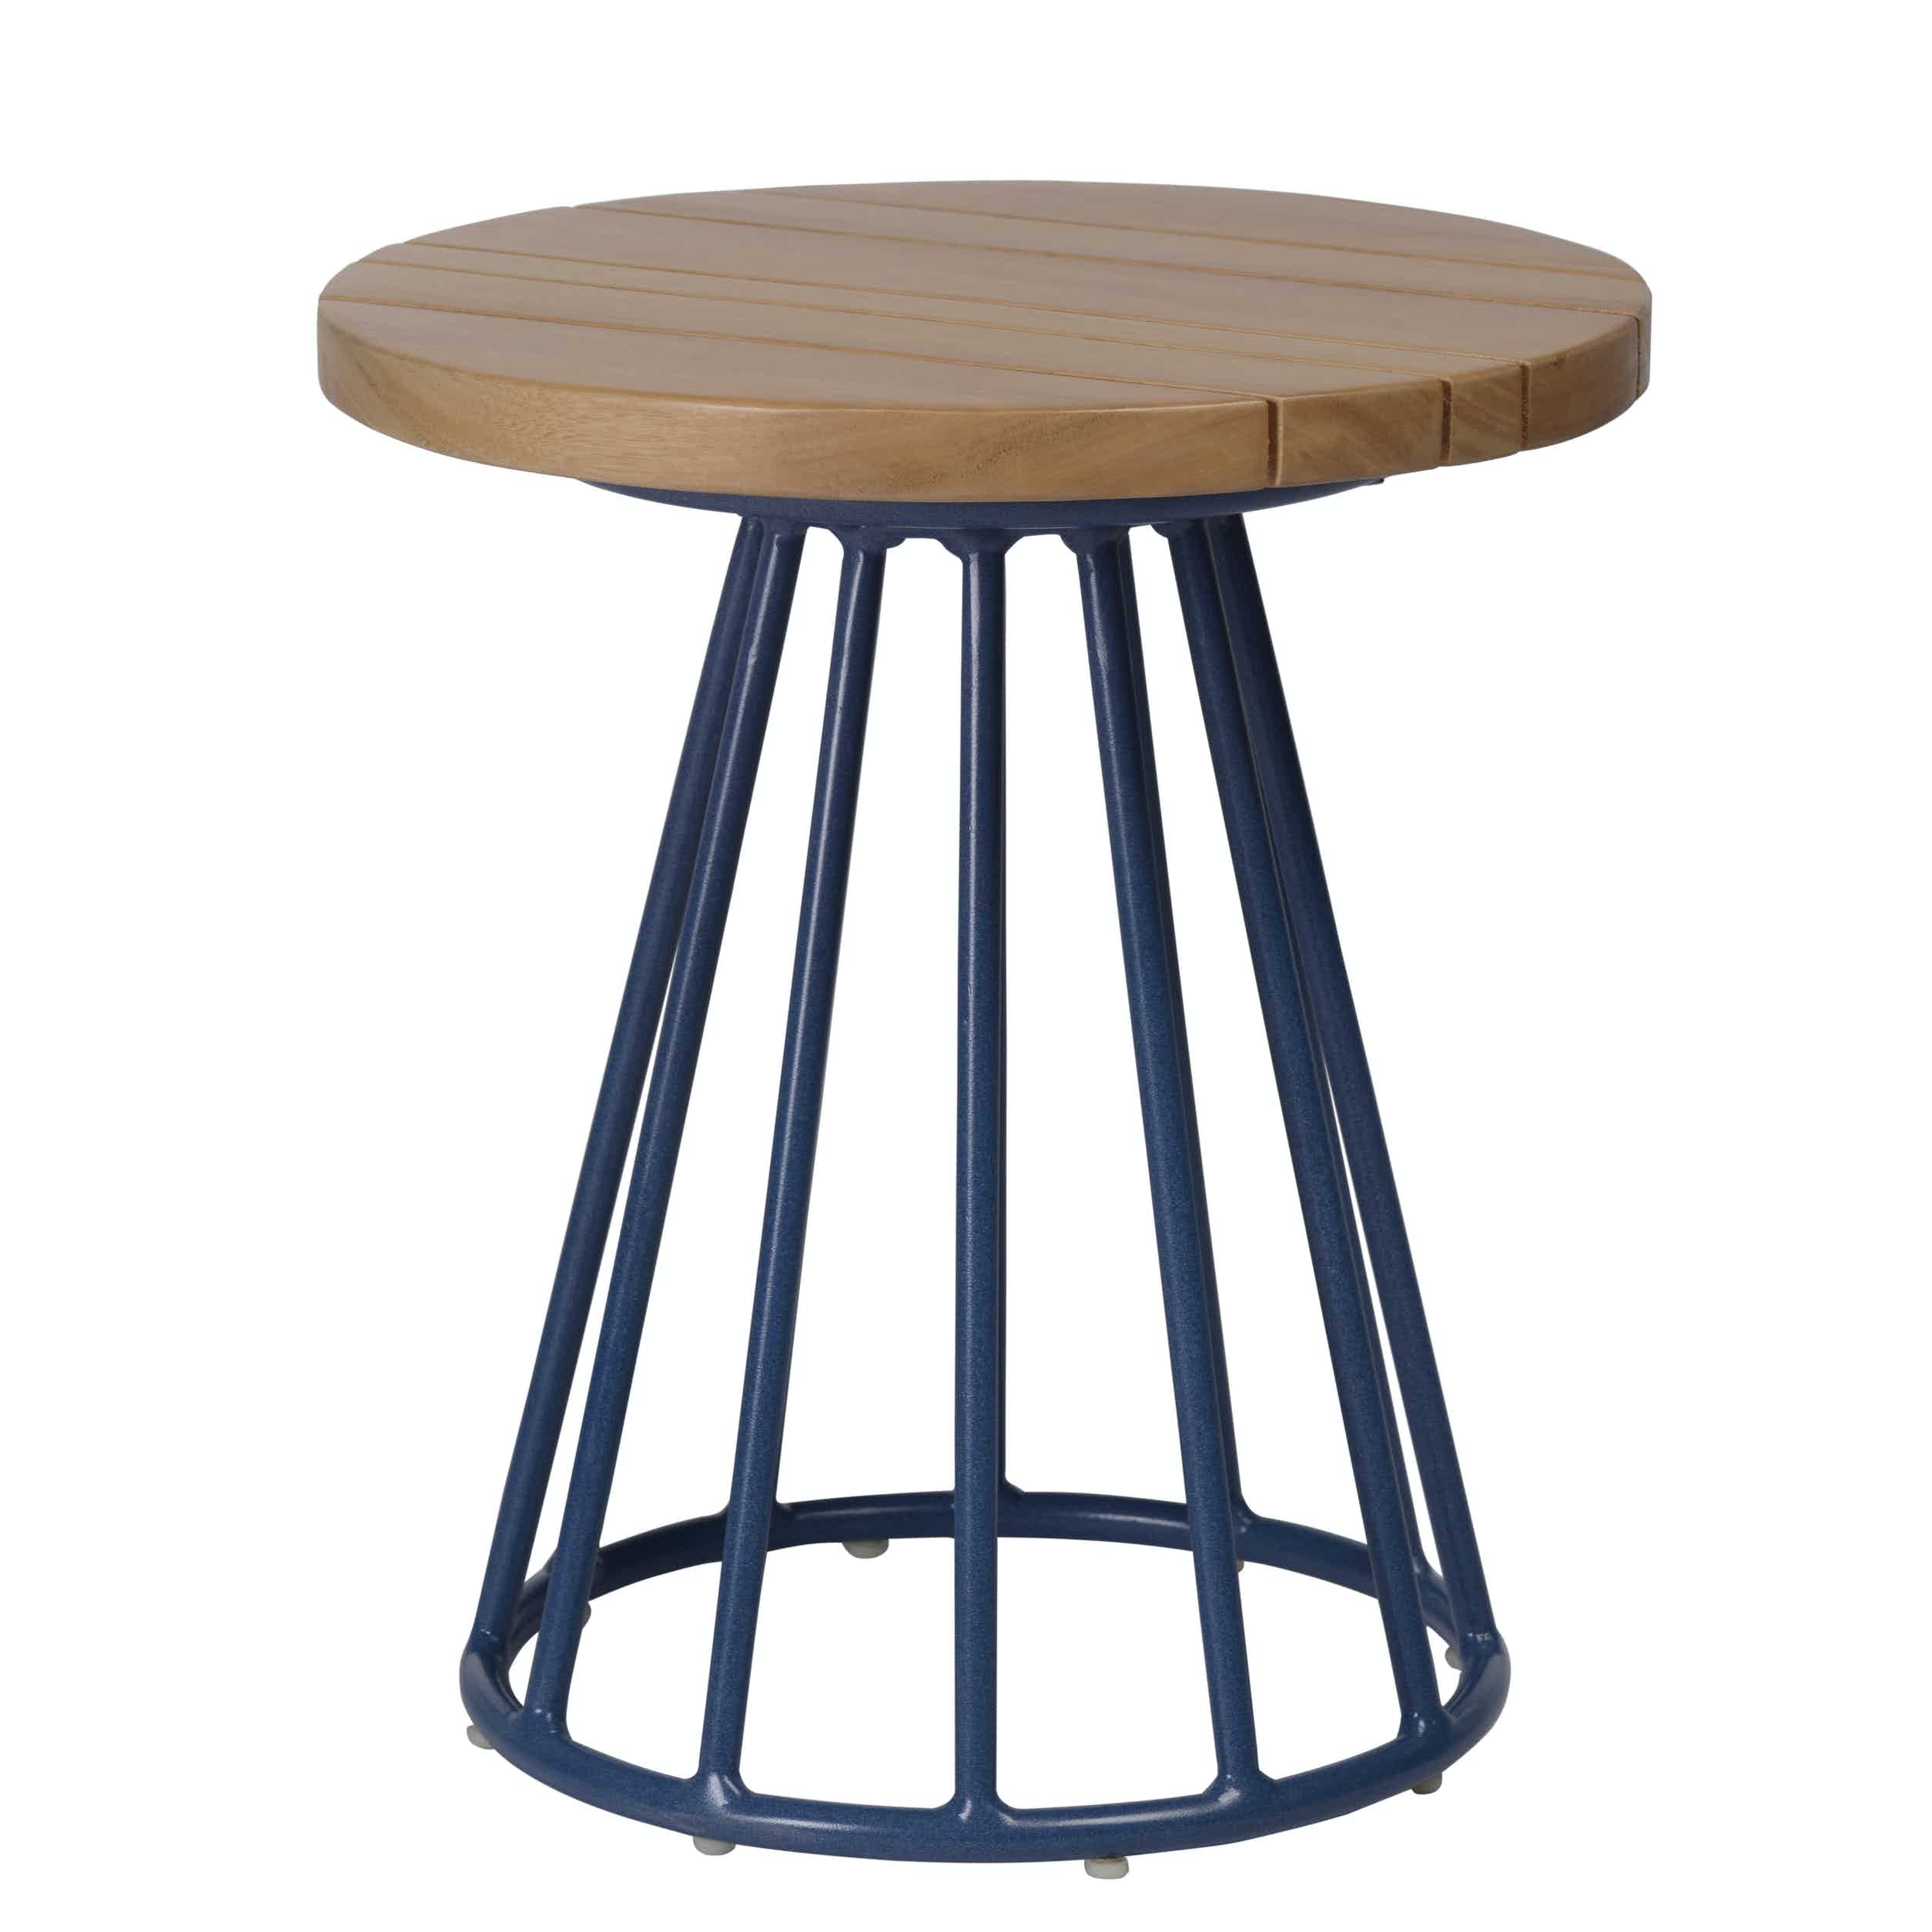 Tidelli biarritz side table thumbnail haute living